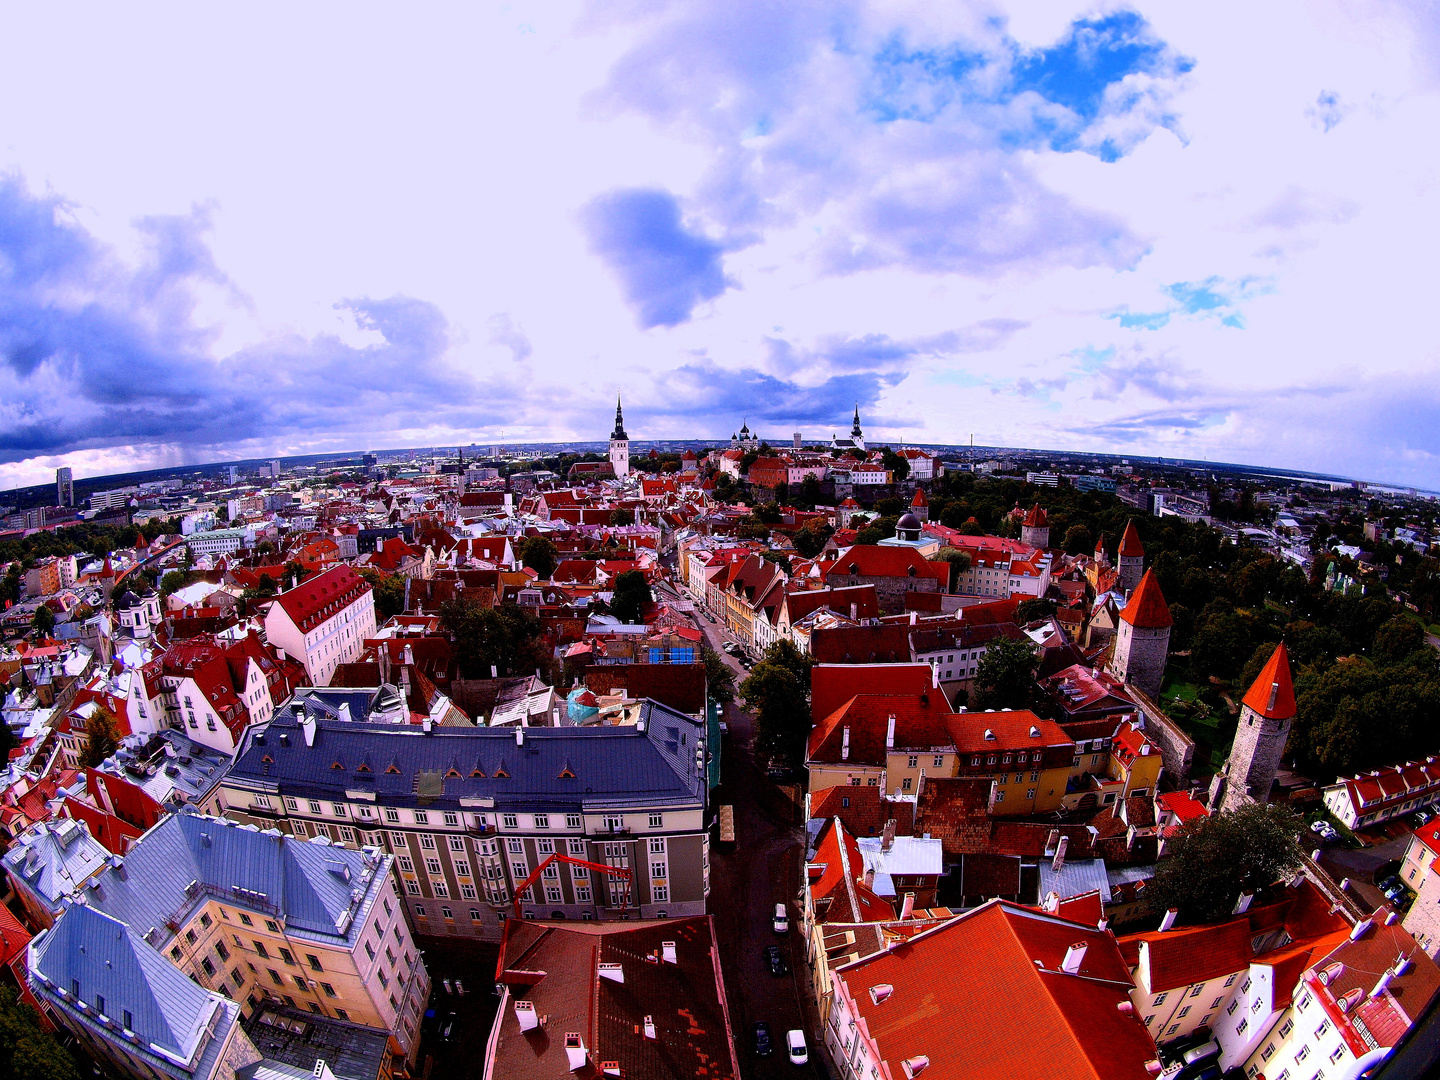 VISTA PANORAMICA DEL CASCO ANTIGUO DE TALLIN.